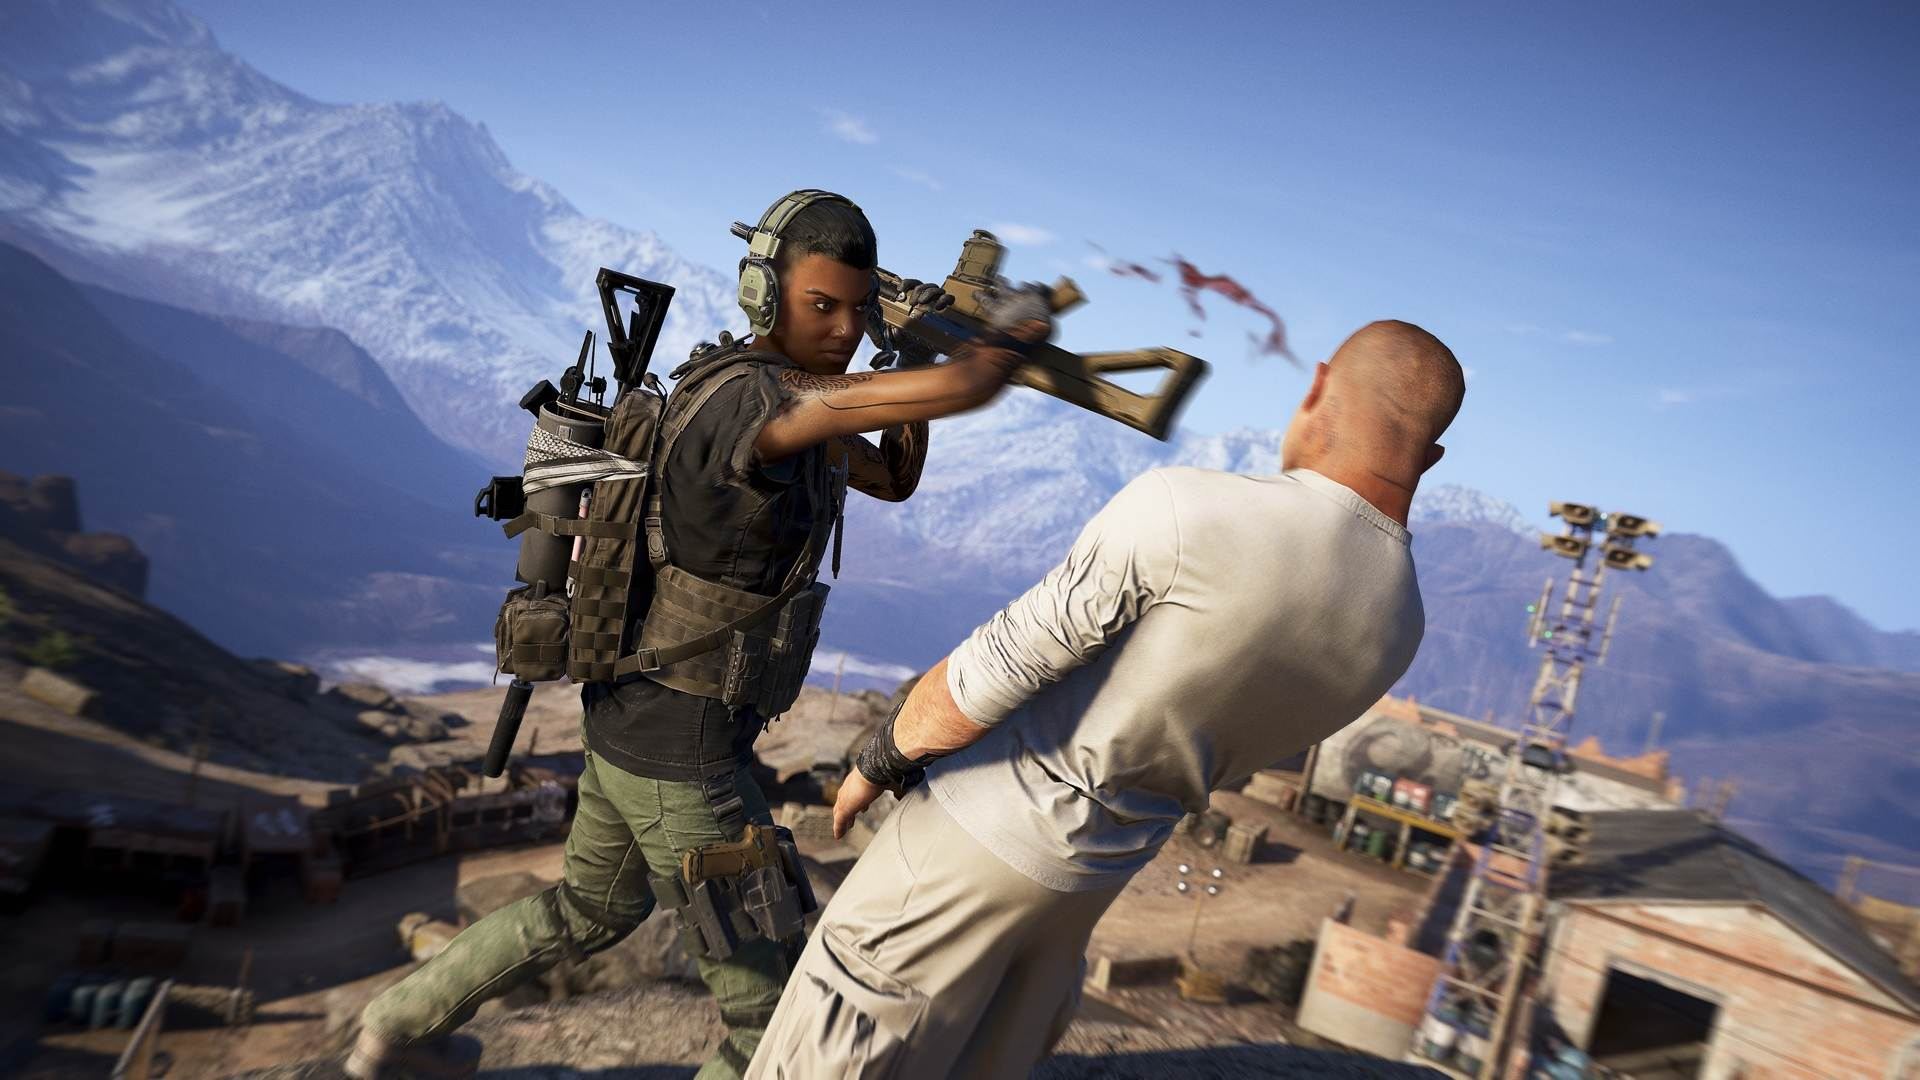 Ghost Recon: Wildlands PvP Mode 'Ghost War' Open Beta Starts This Month